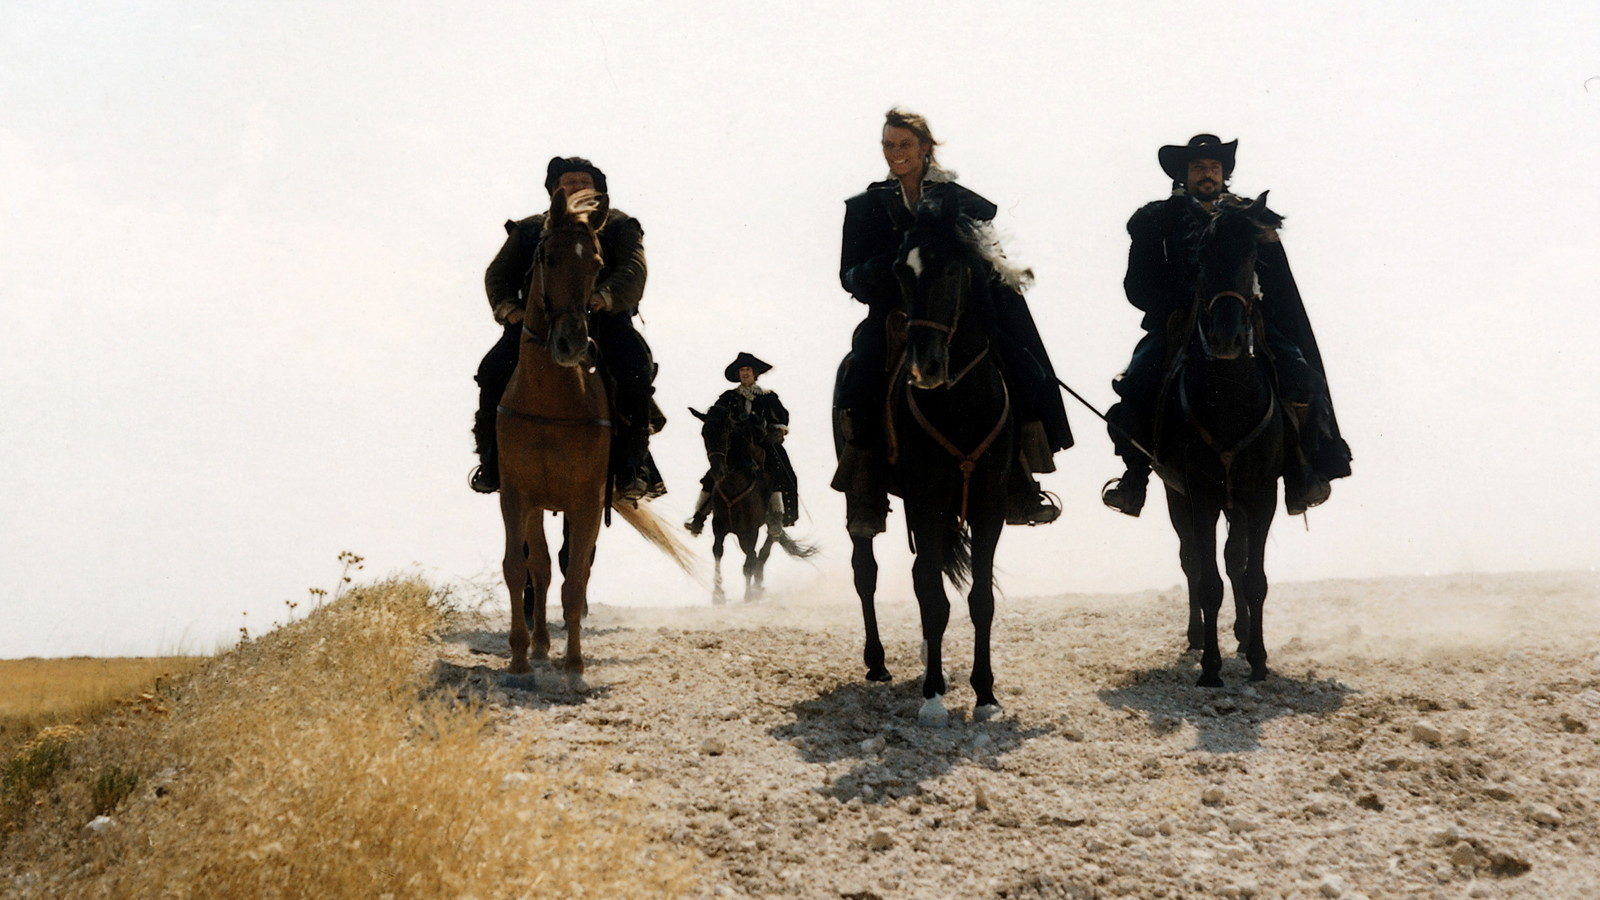 The Four Musketeers: Milady's Revenge | Film Society of Lincoln Center